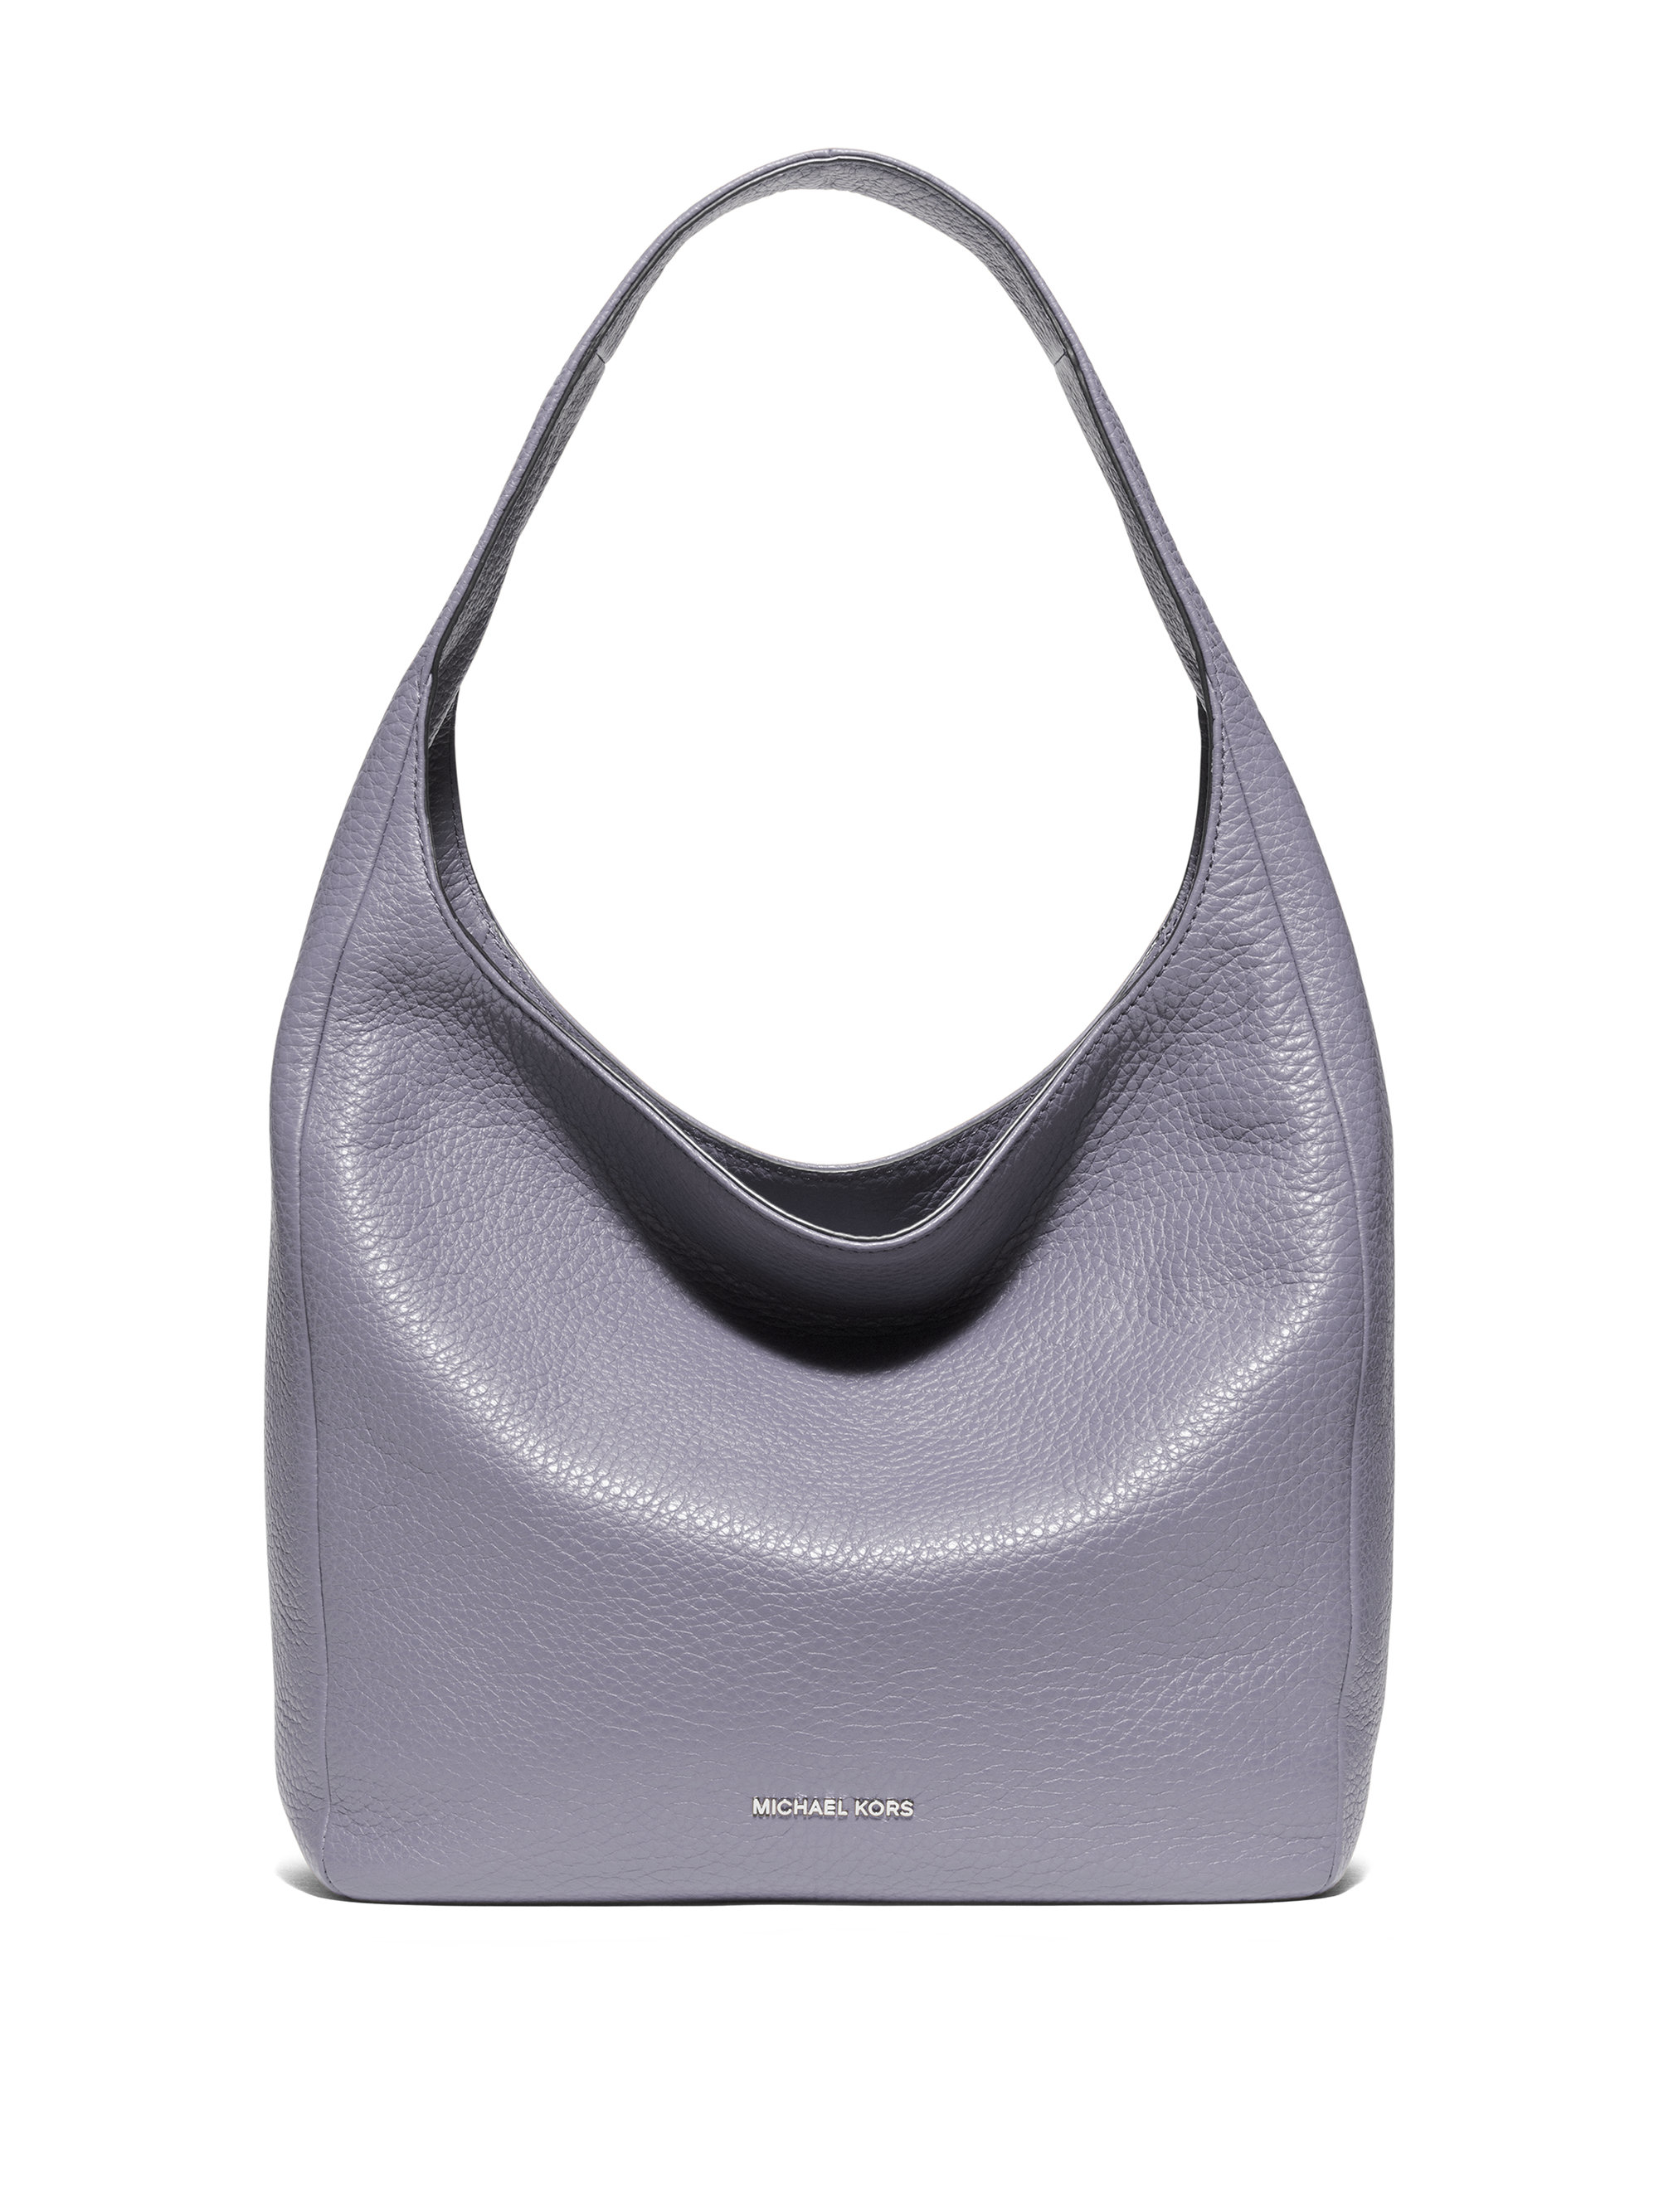 Michael michael kors Lena Large Leather Hobo Bag in Metallic | Lyst